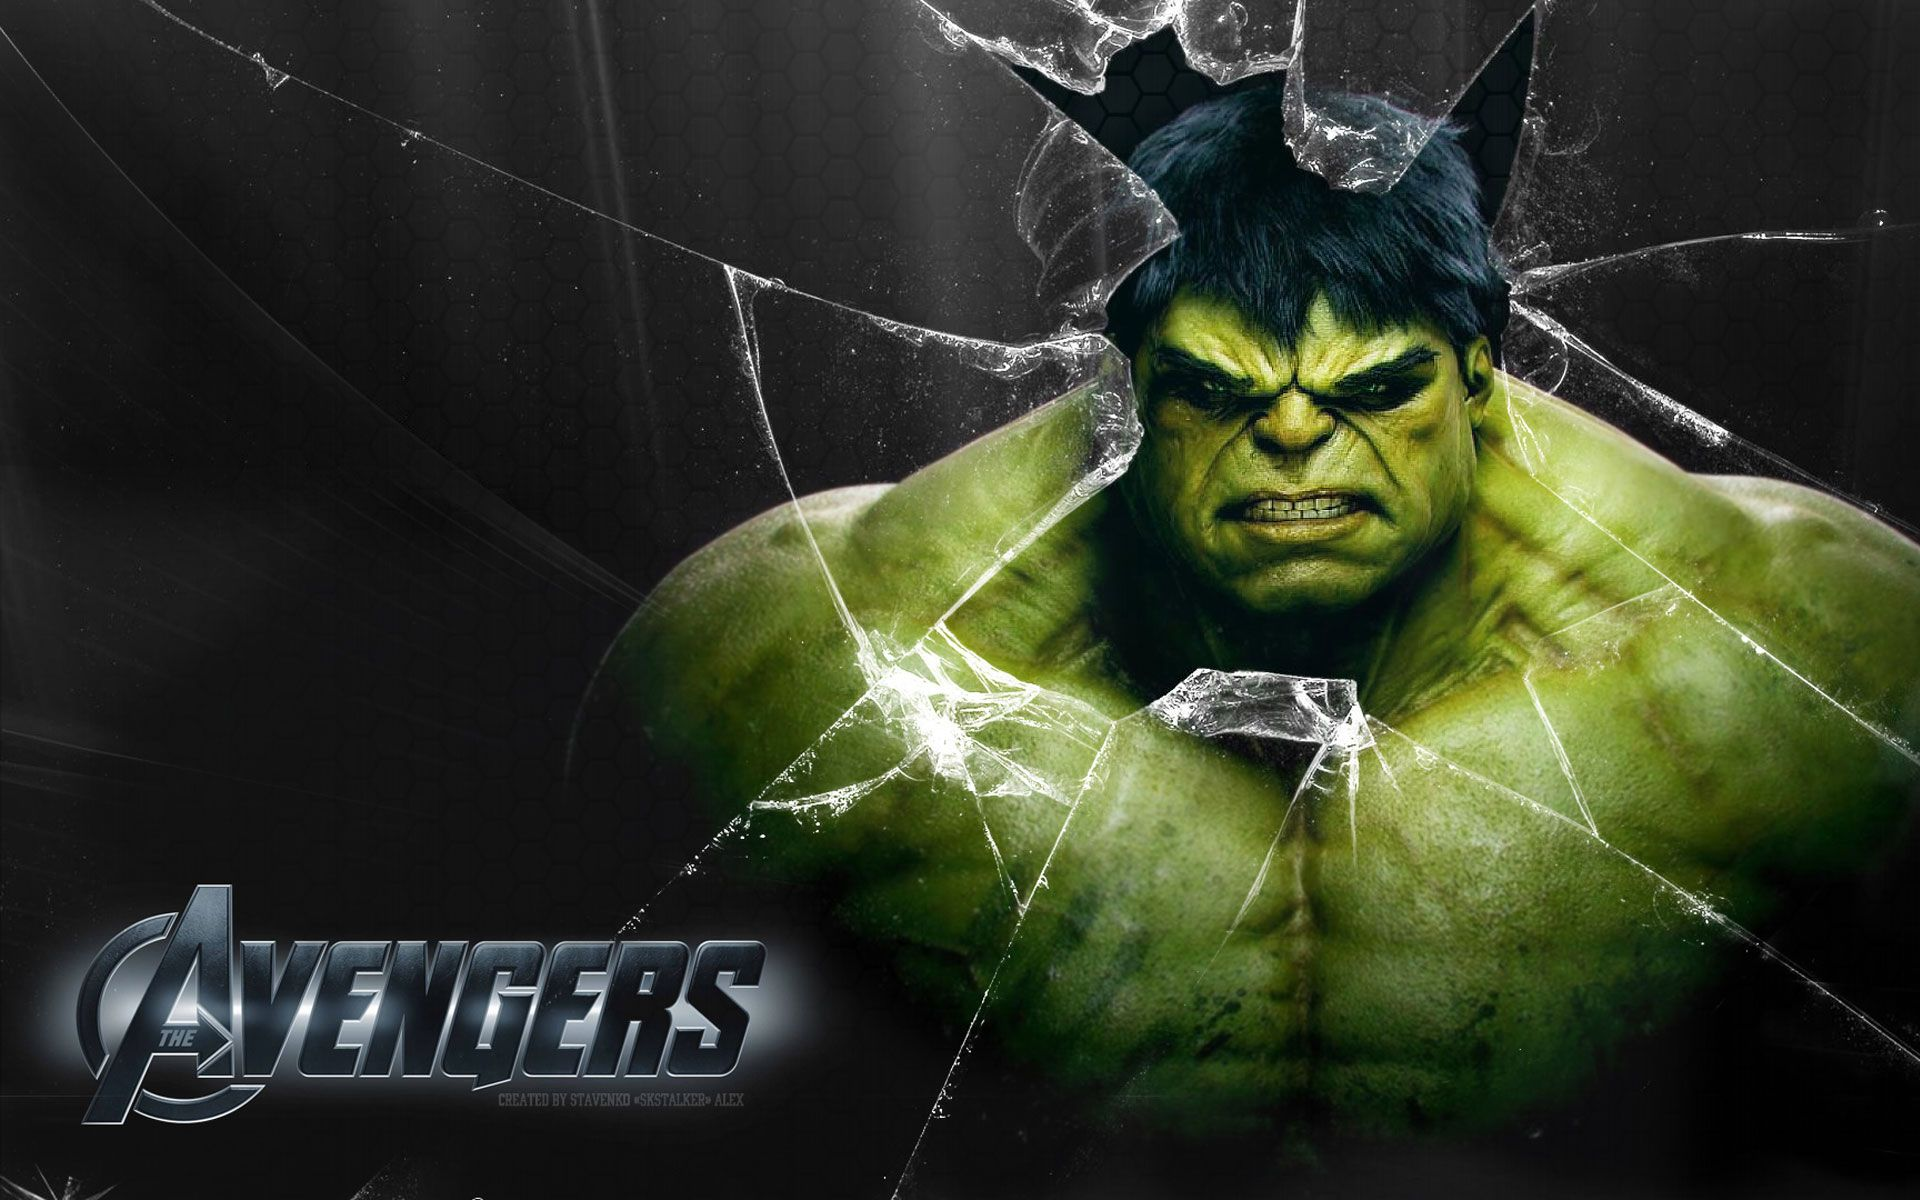 Download Wallpaper Avenger Hulk Character HD claudia 1920x1200